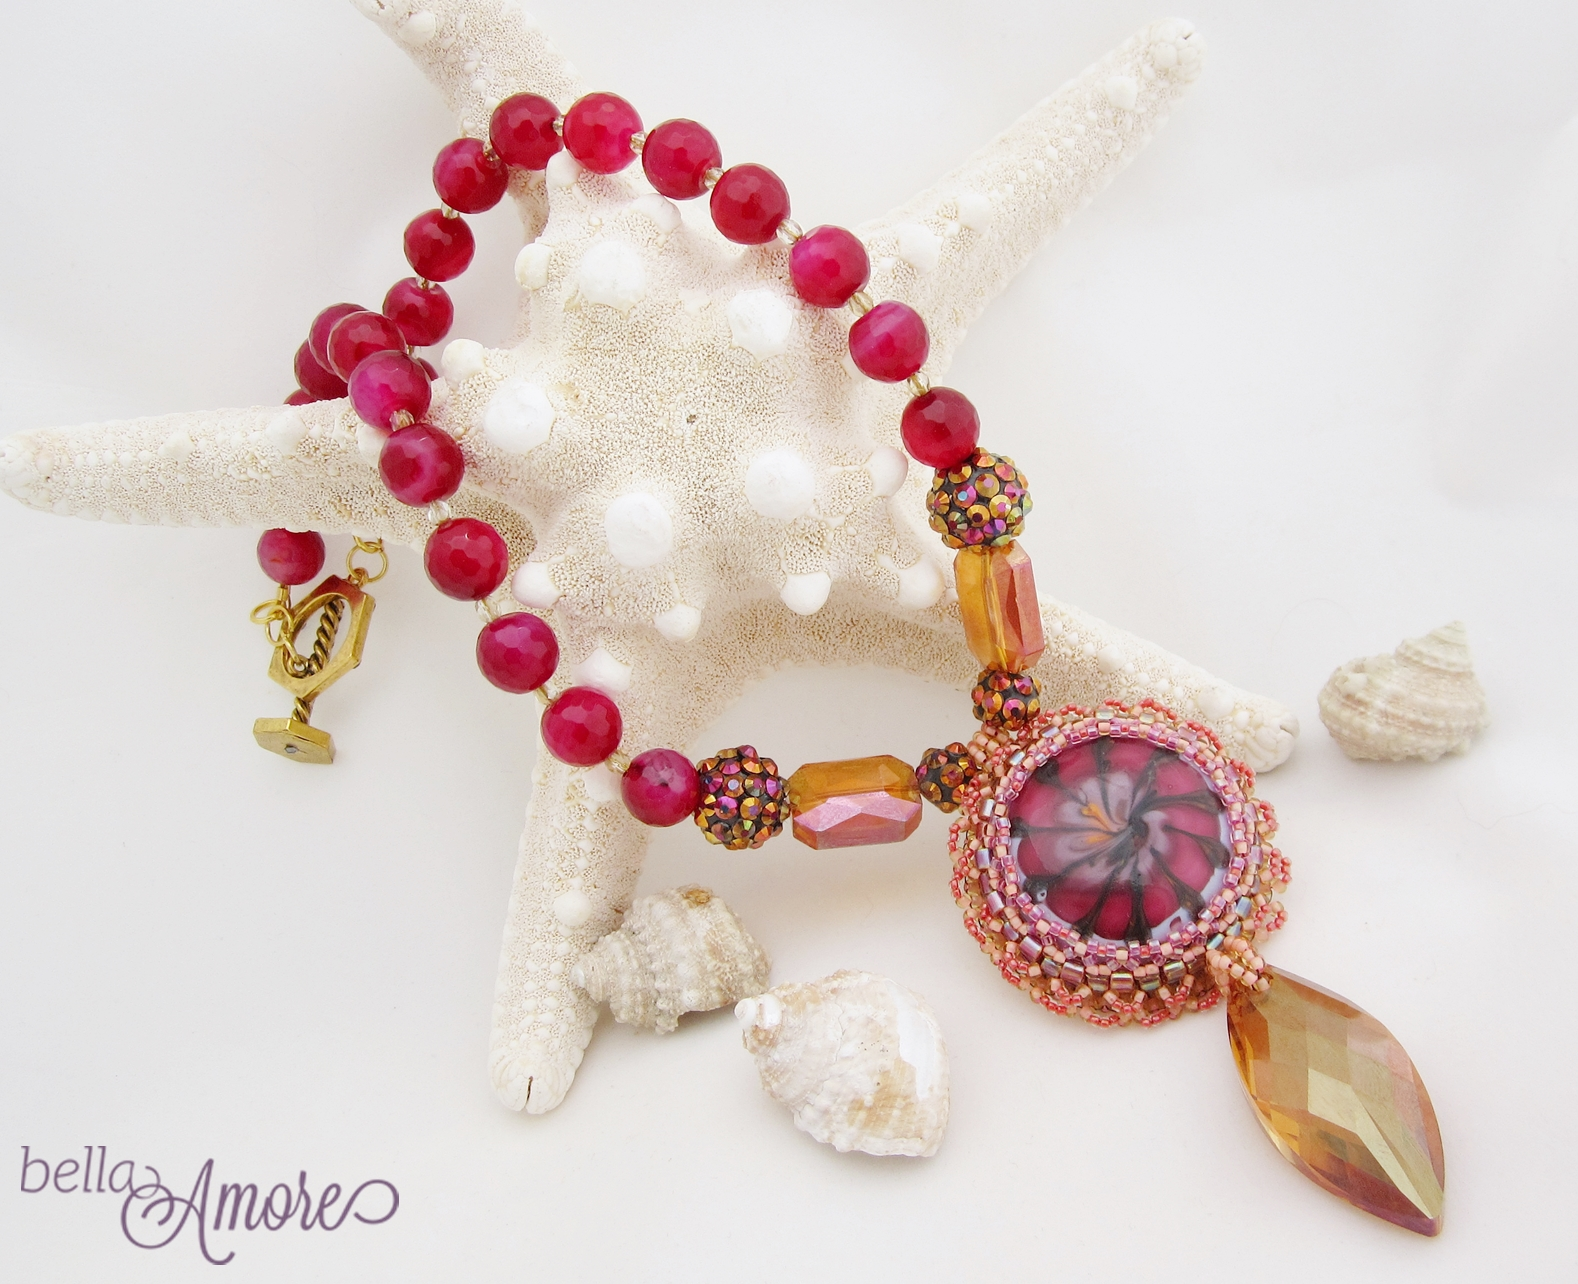 Blog | Designs By Dawn Marie - Bead Embroidered Jewelry from Lake ...